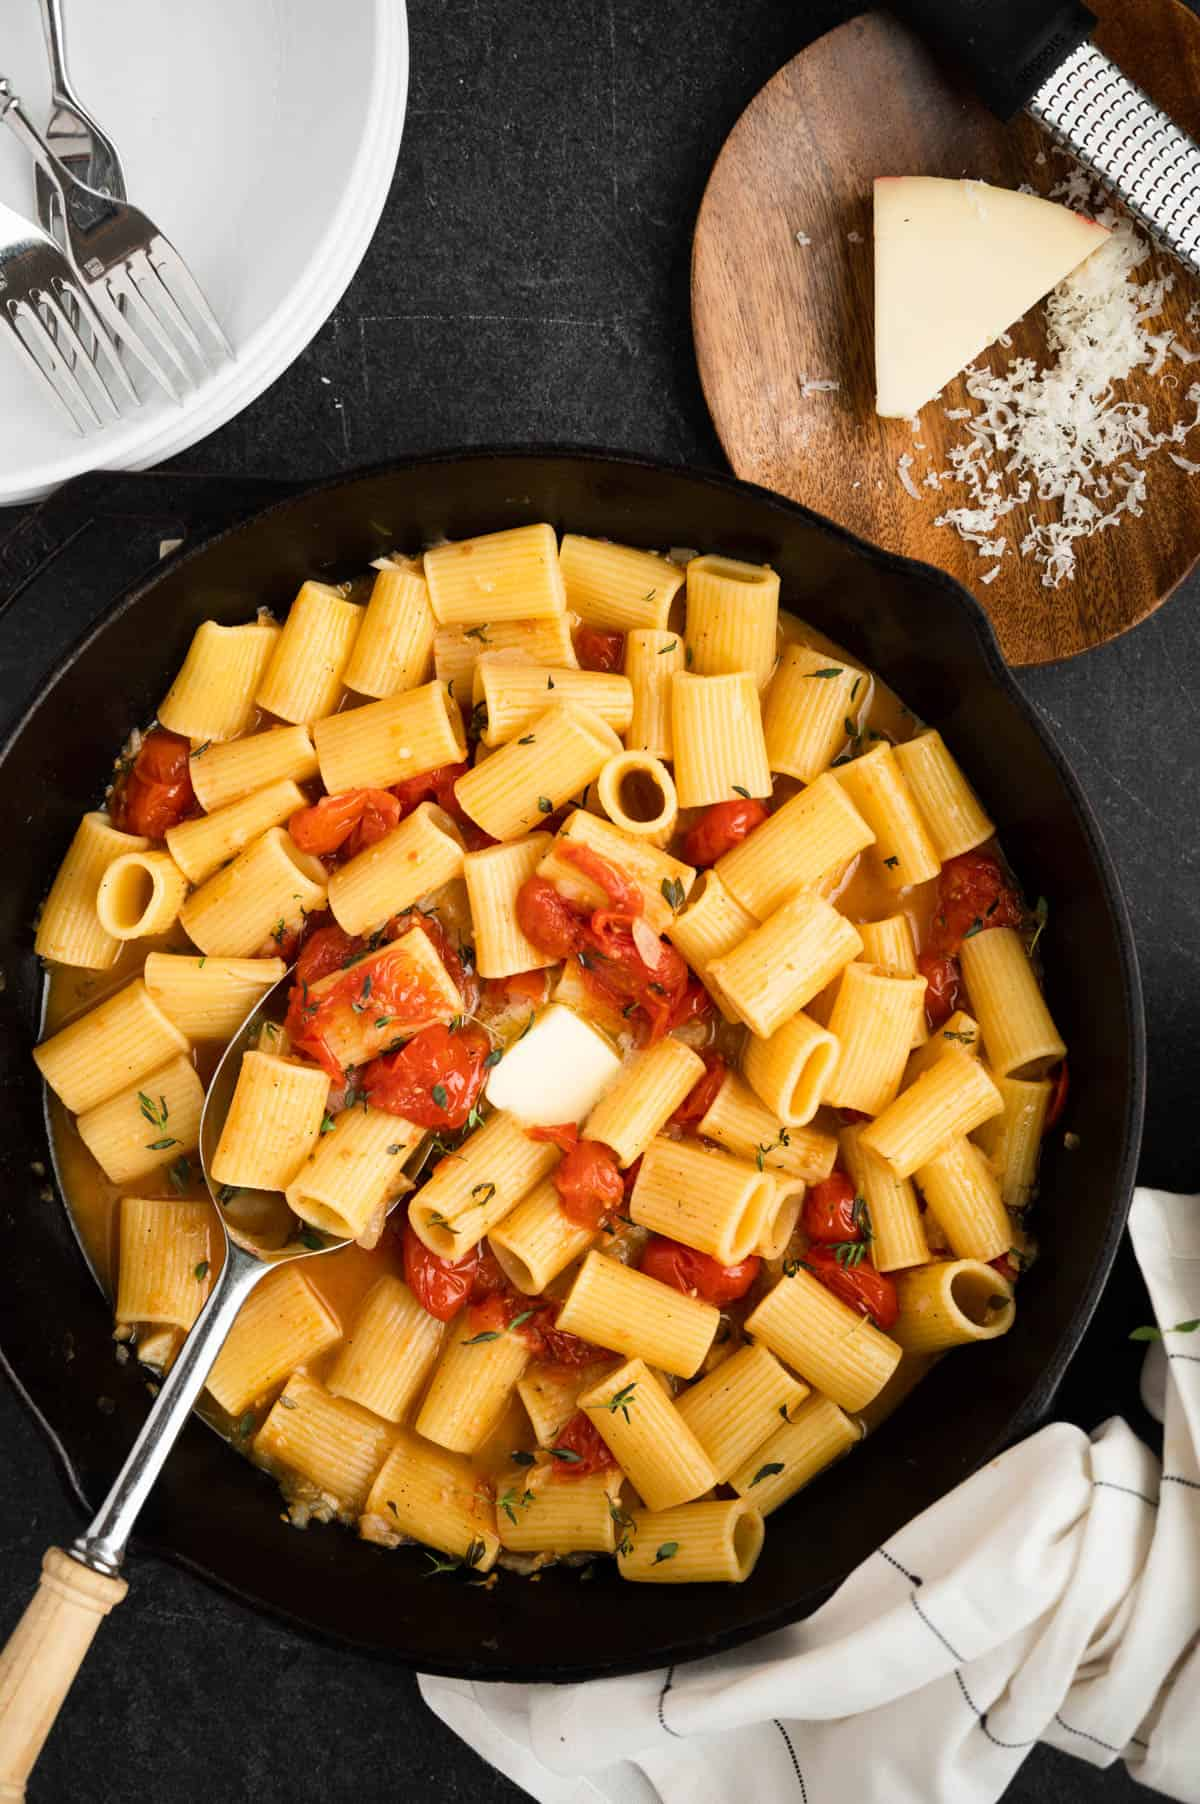 pat of butter on pan of rigatoni and tomatoes in a cast iron skillet